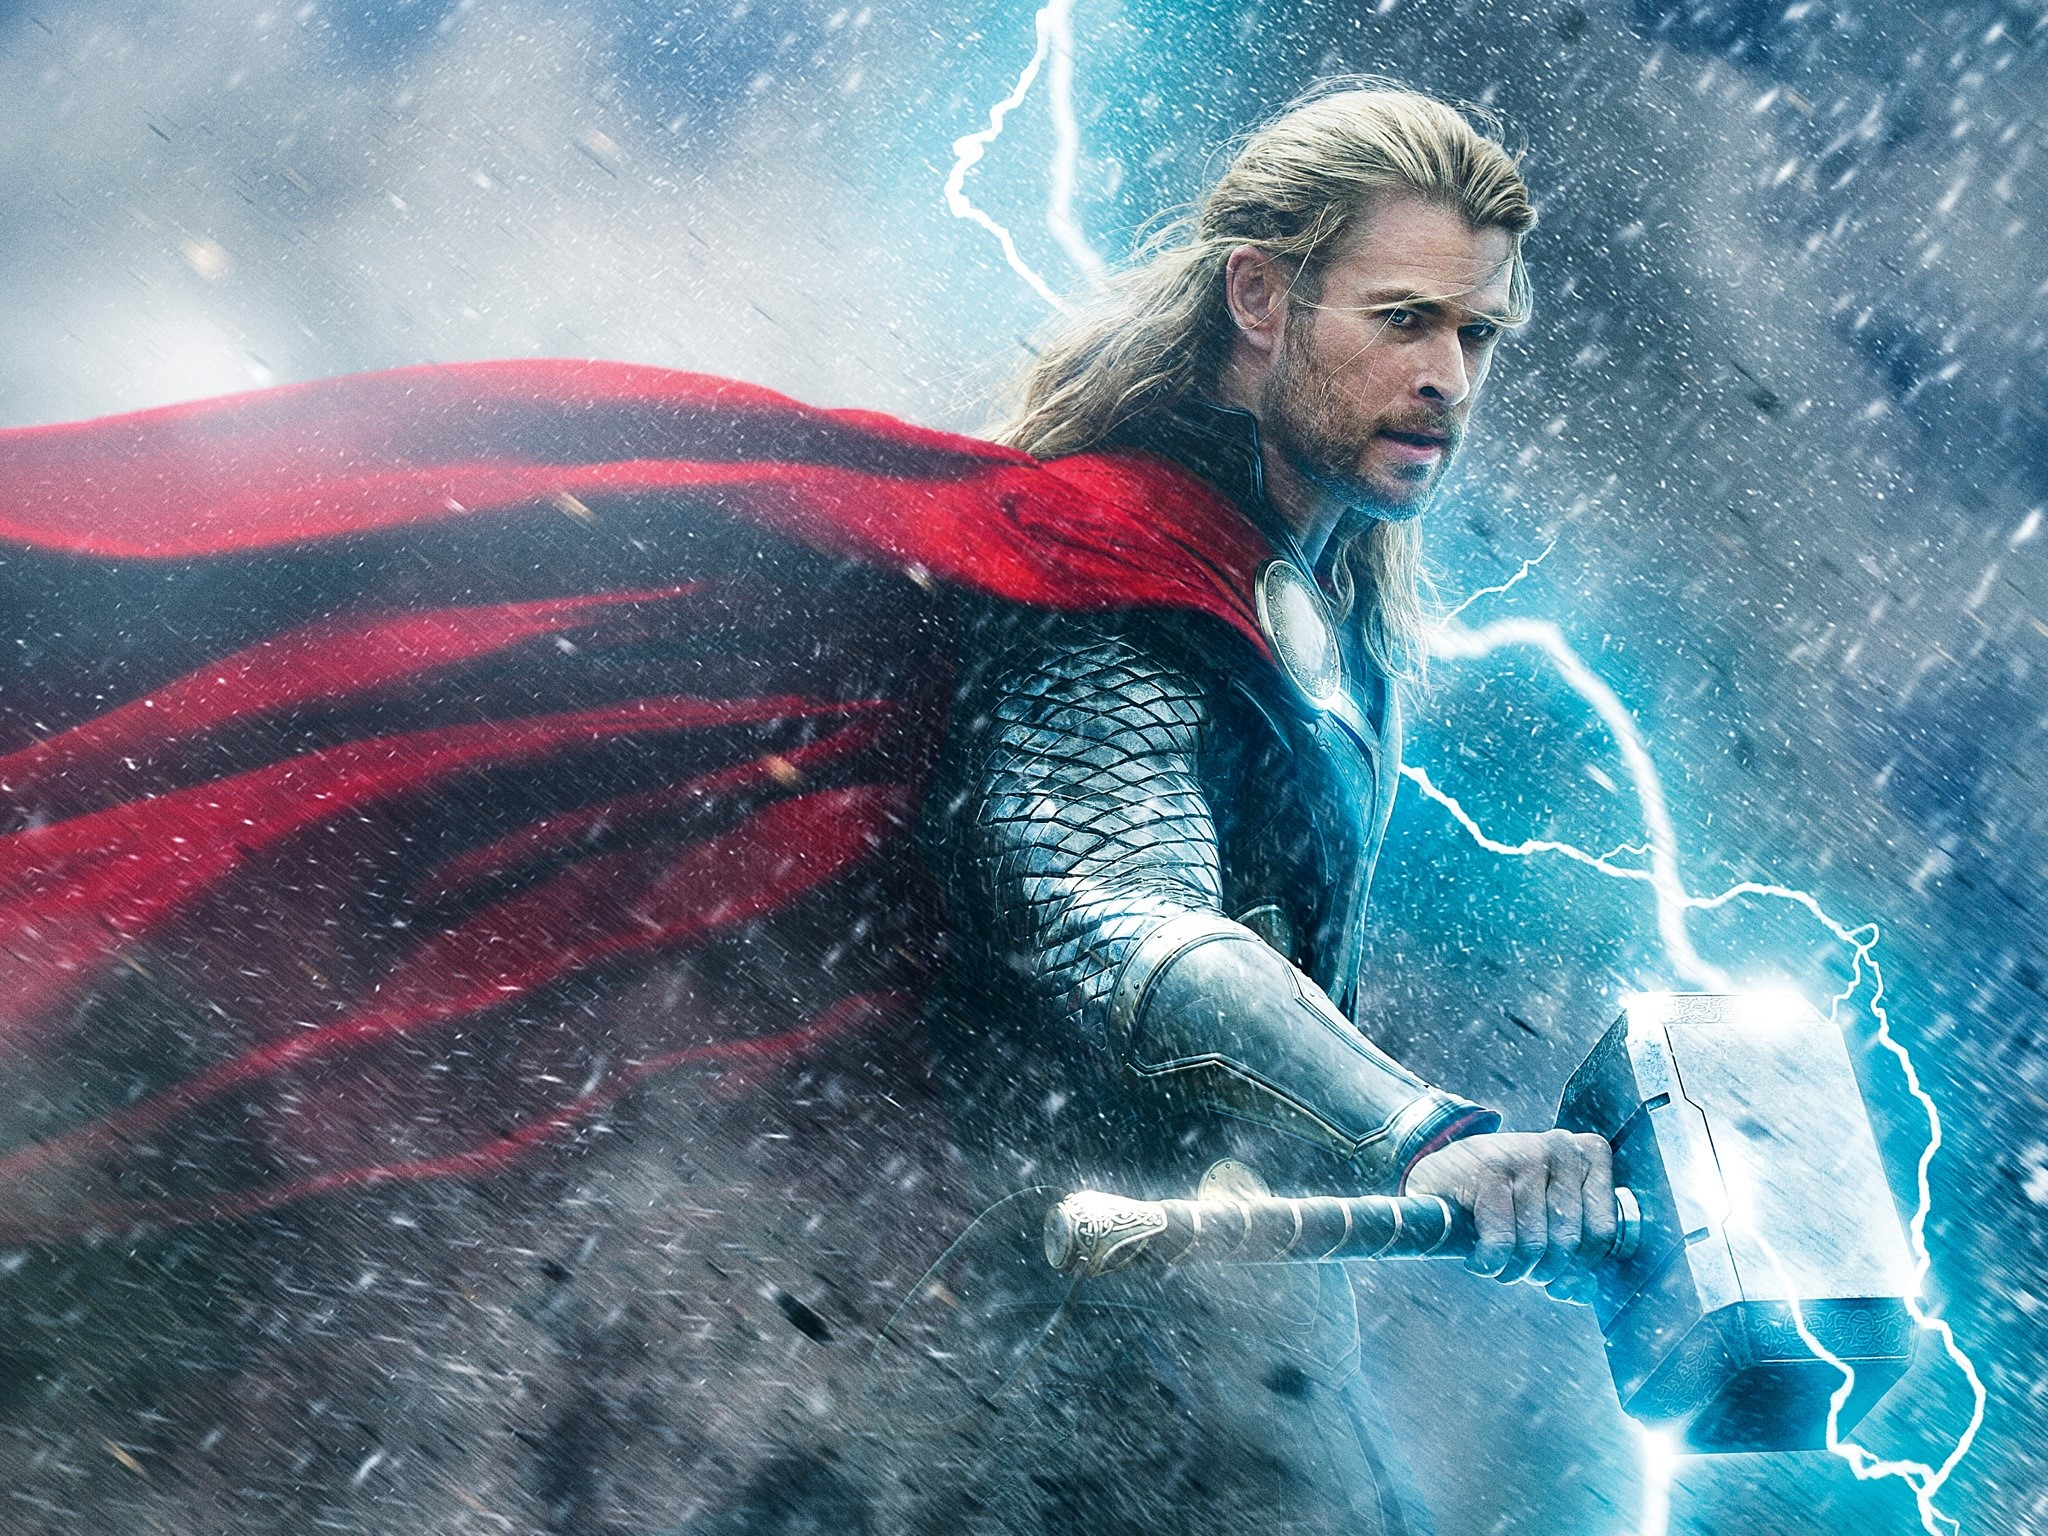 Wallpaper Thor The dark world